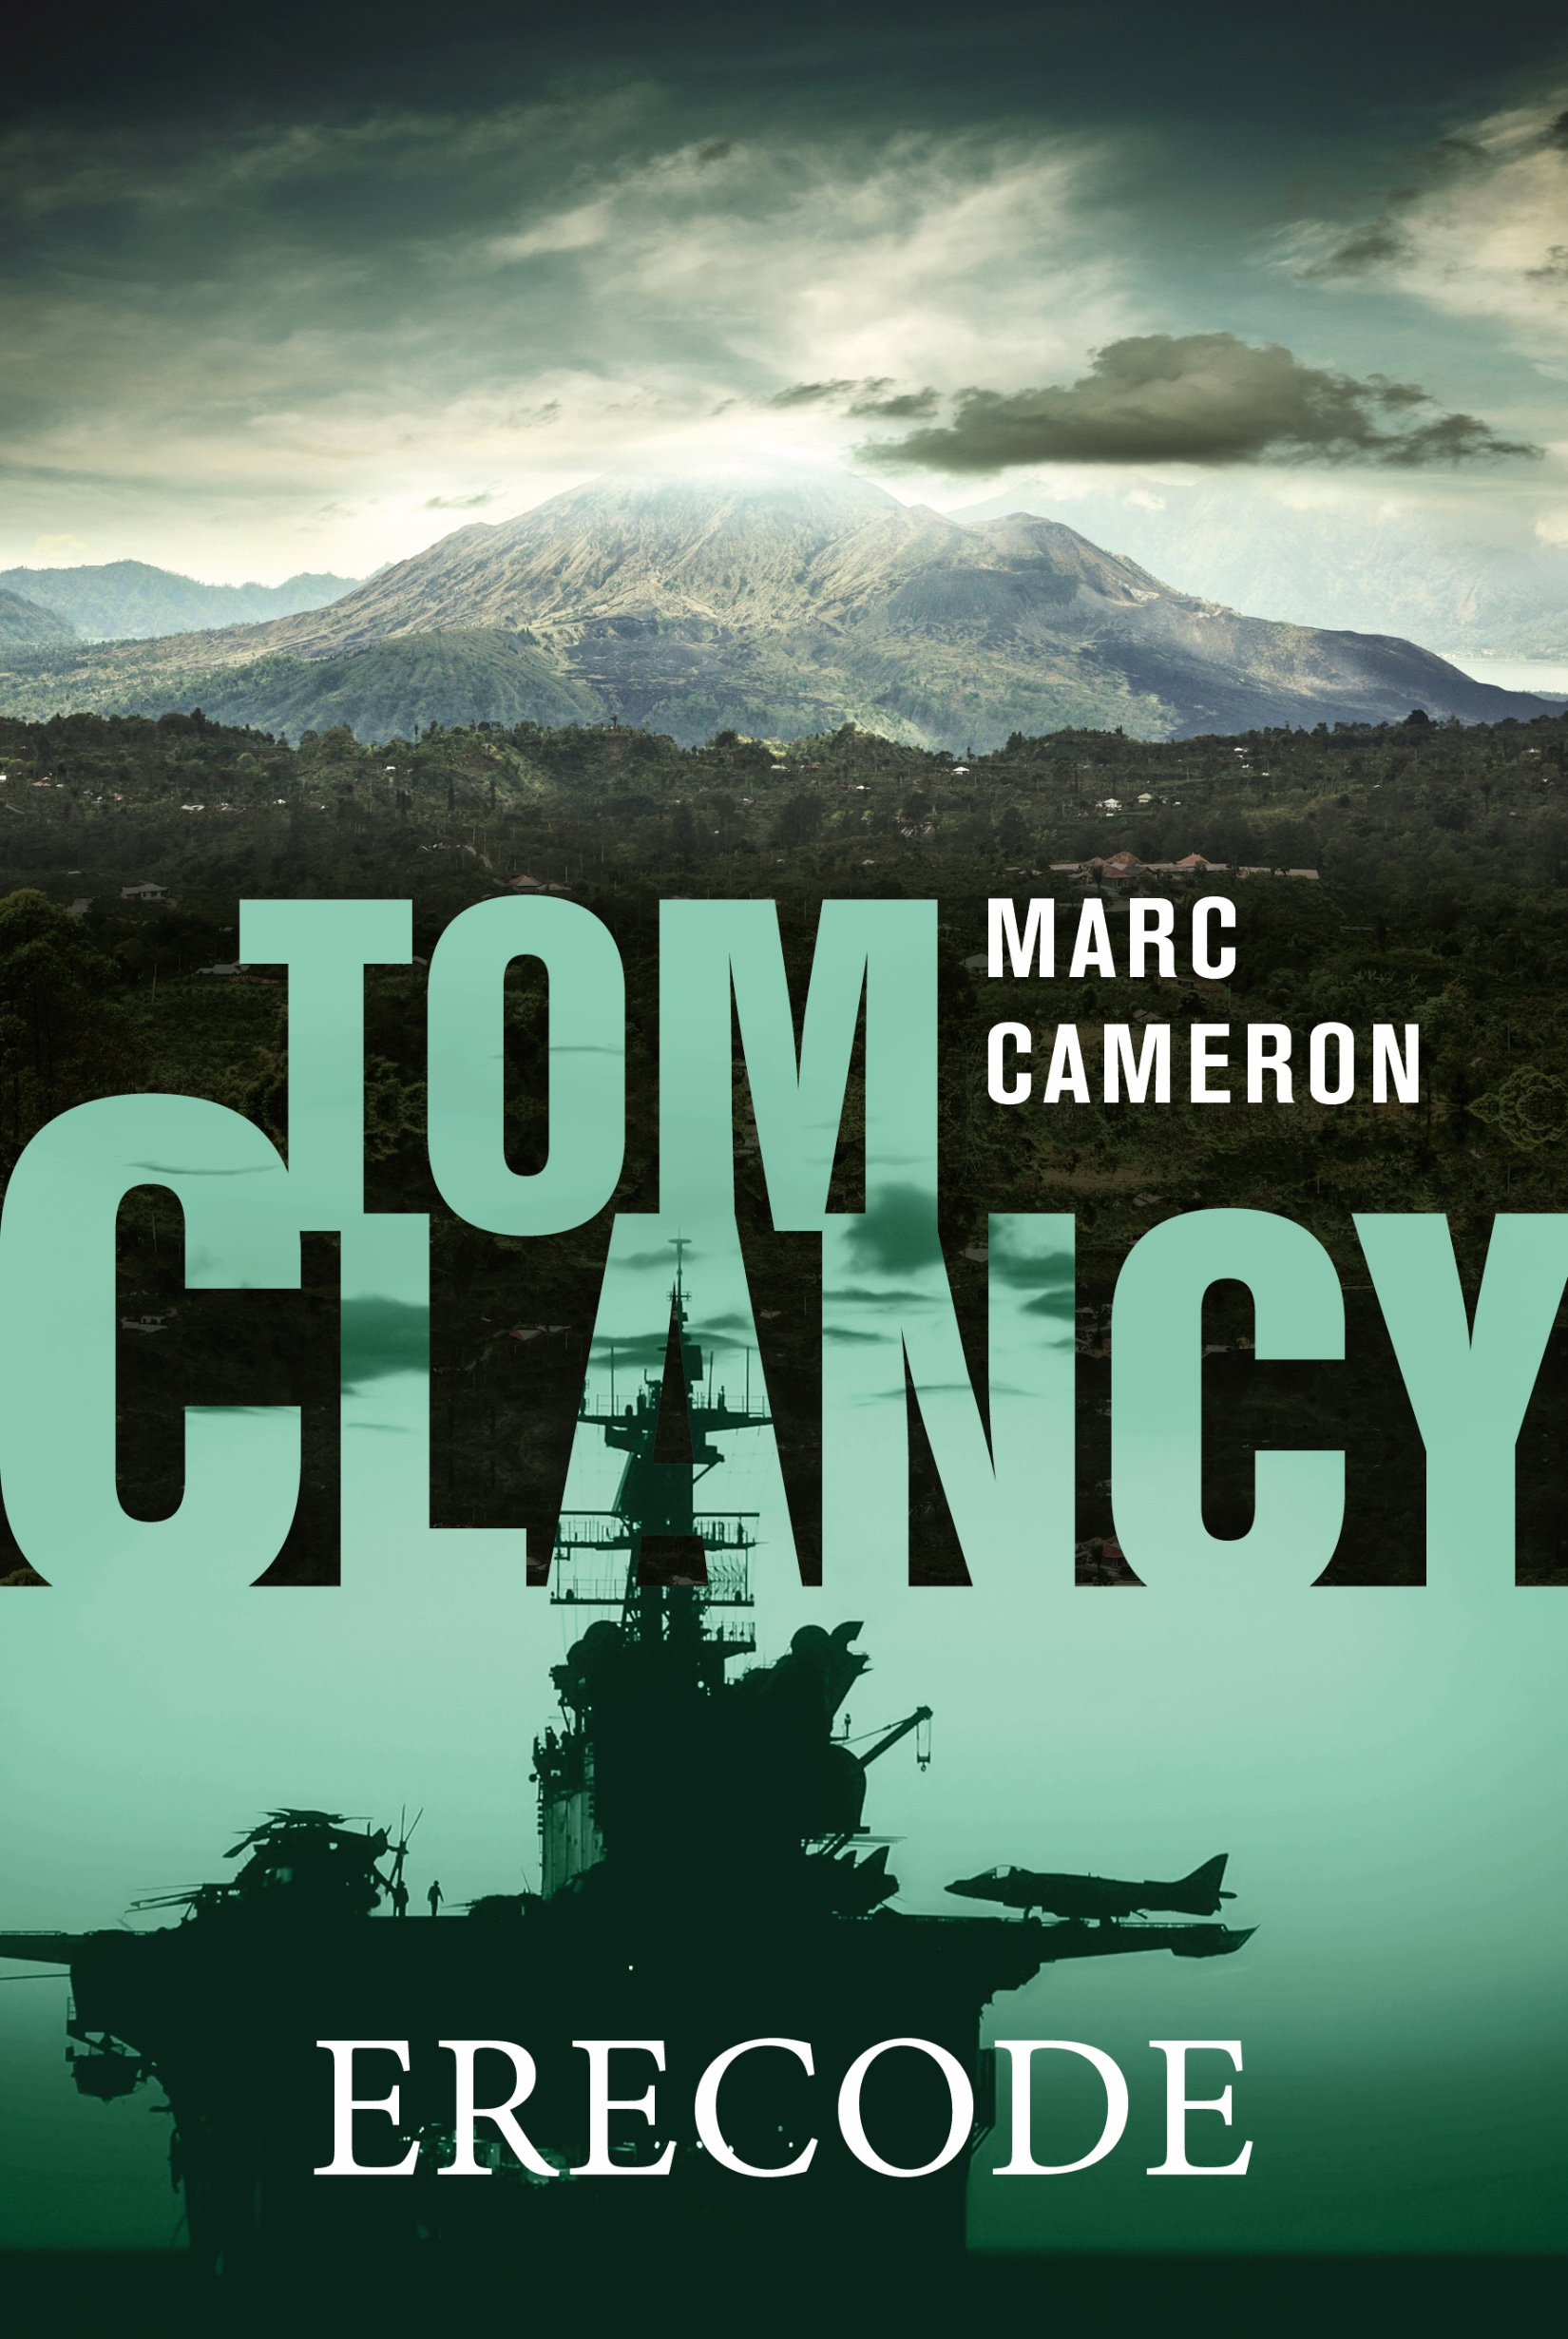 Tom Clancy Erecode - boekenflits